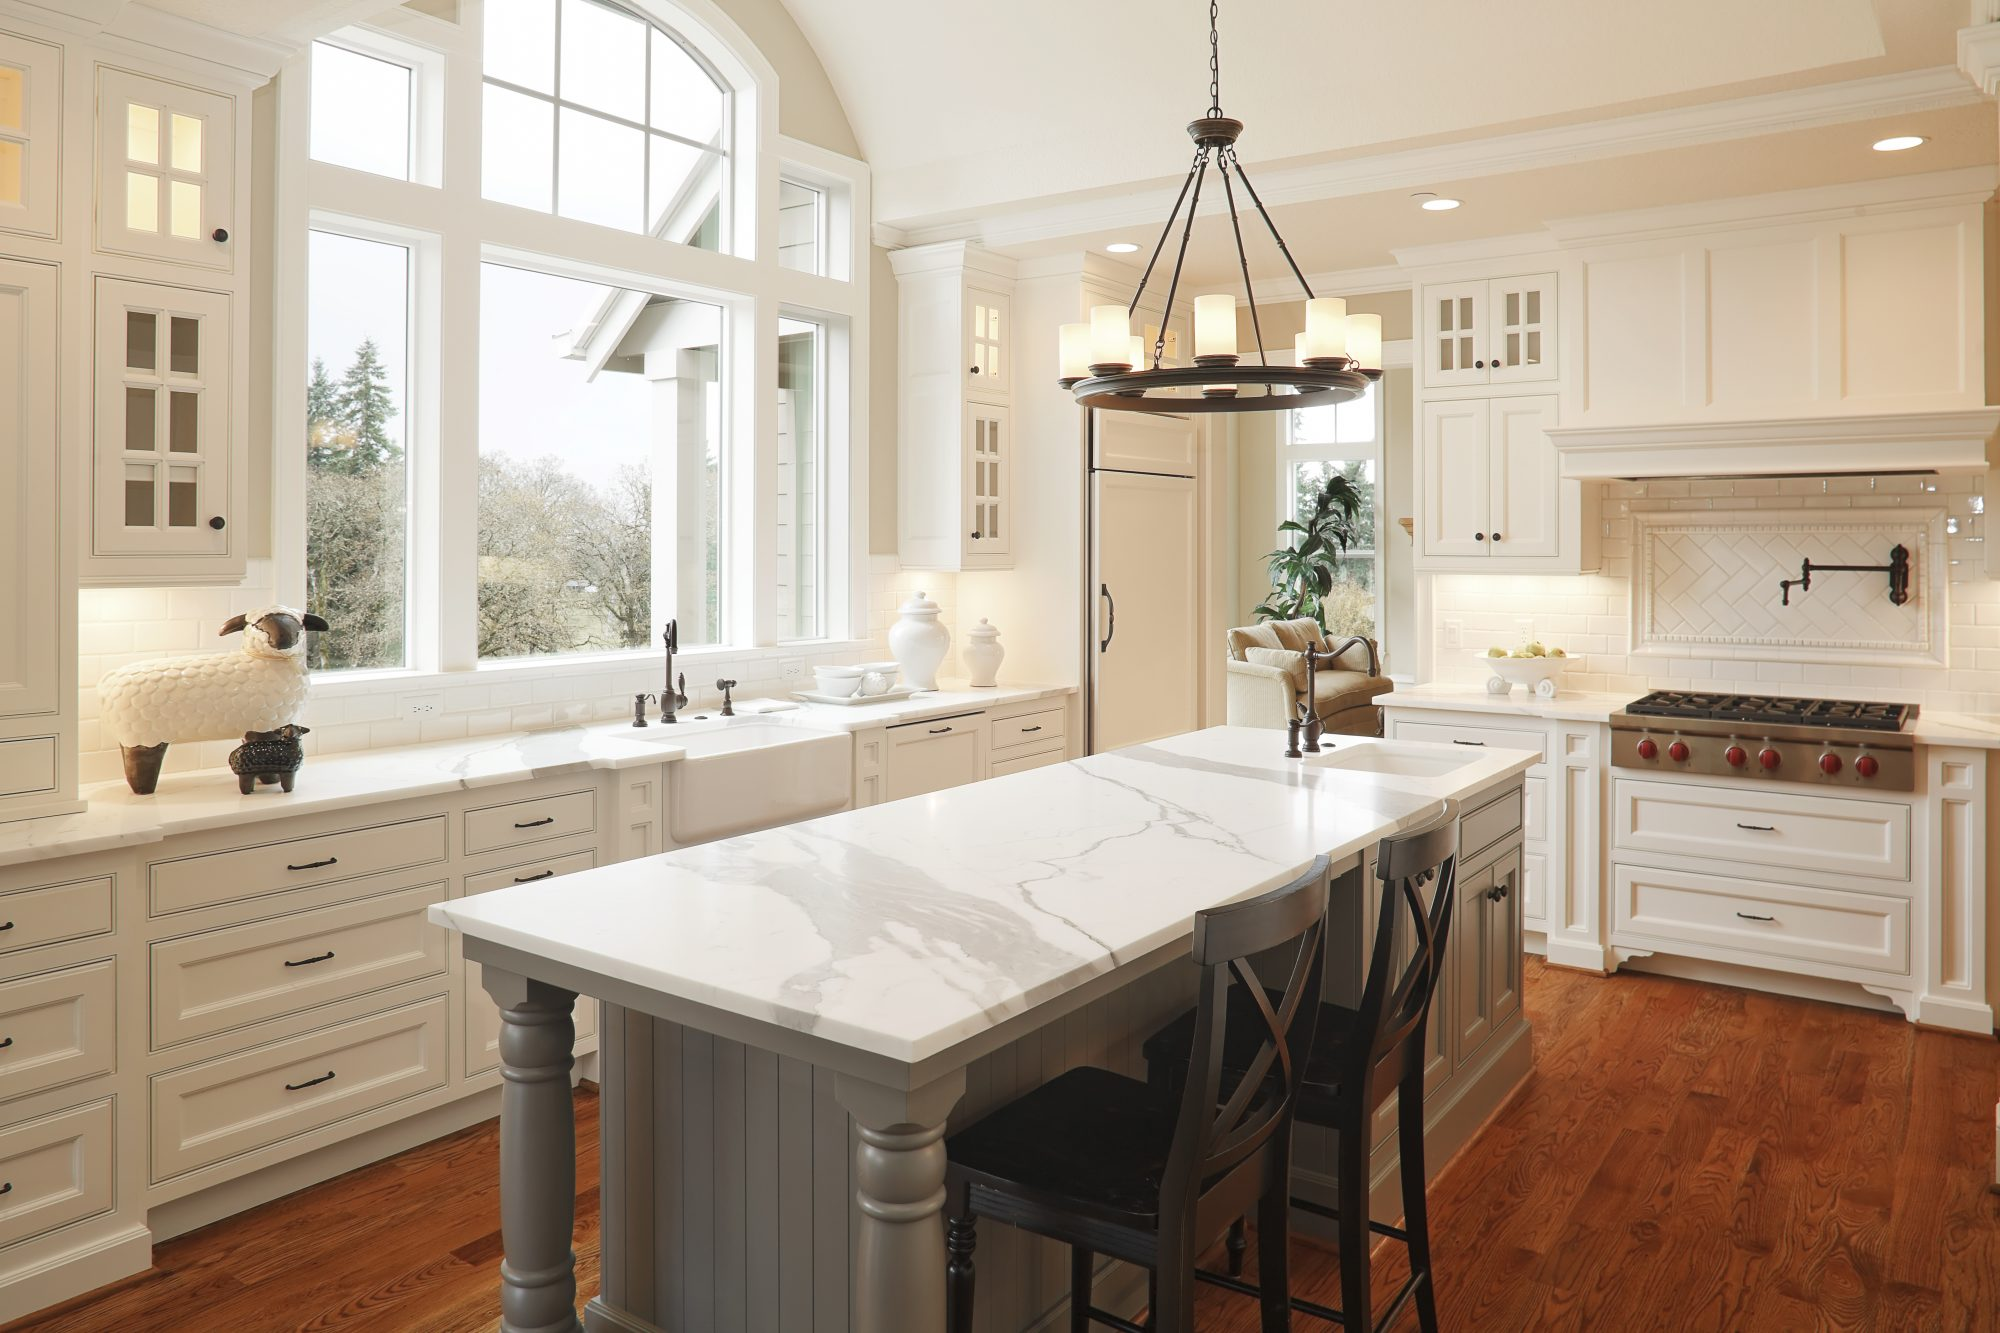 Kitchen with Veined Countertops